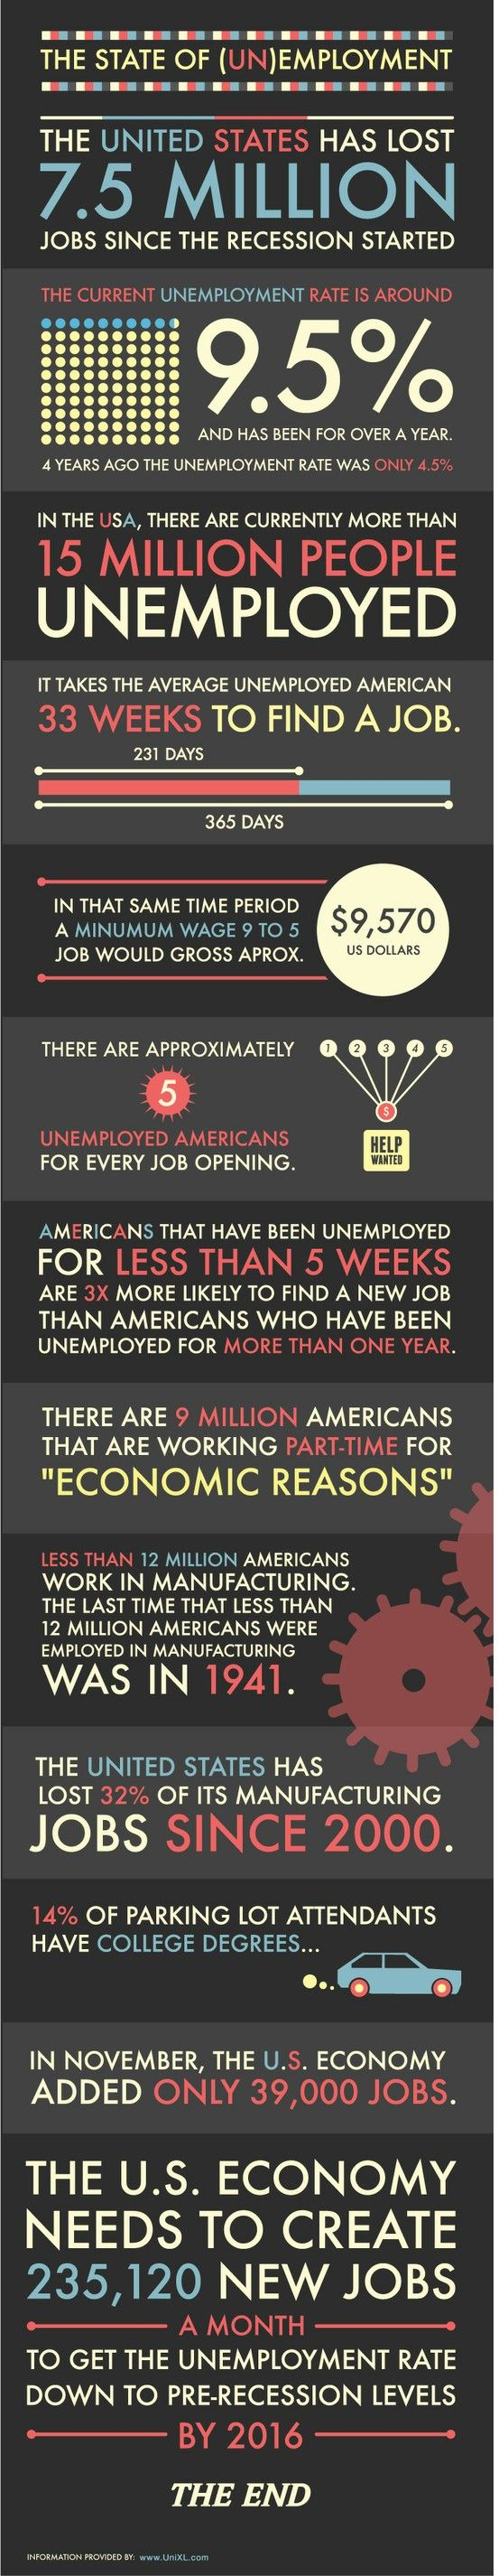 unemployment rate infographic